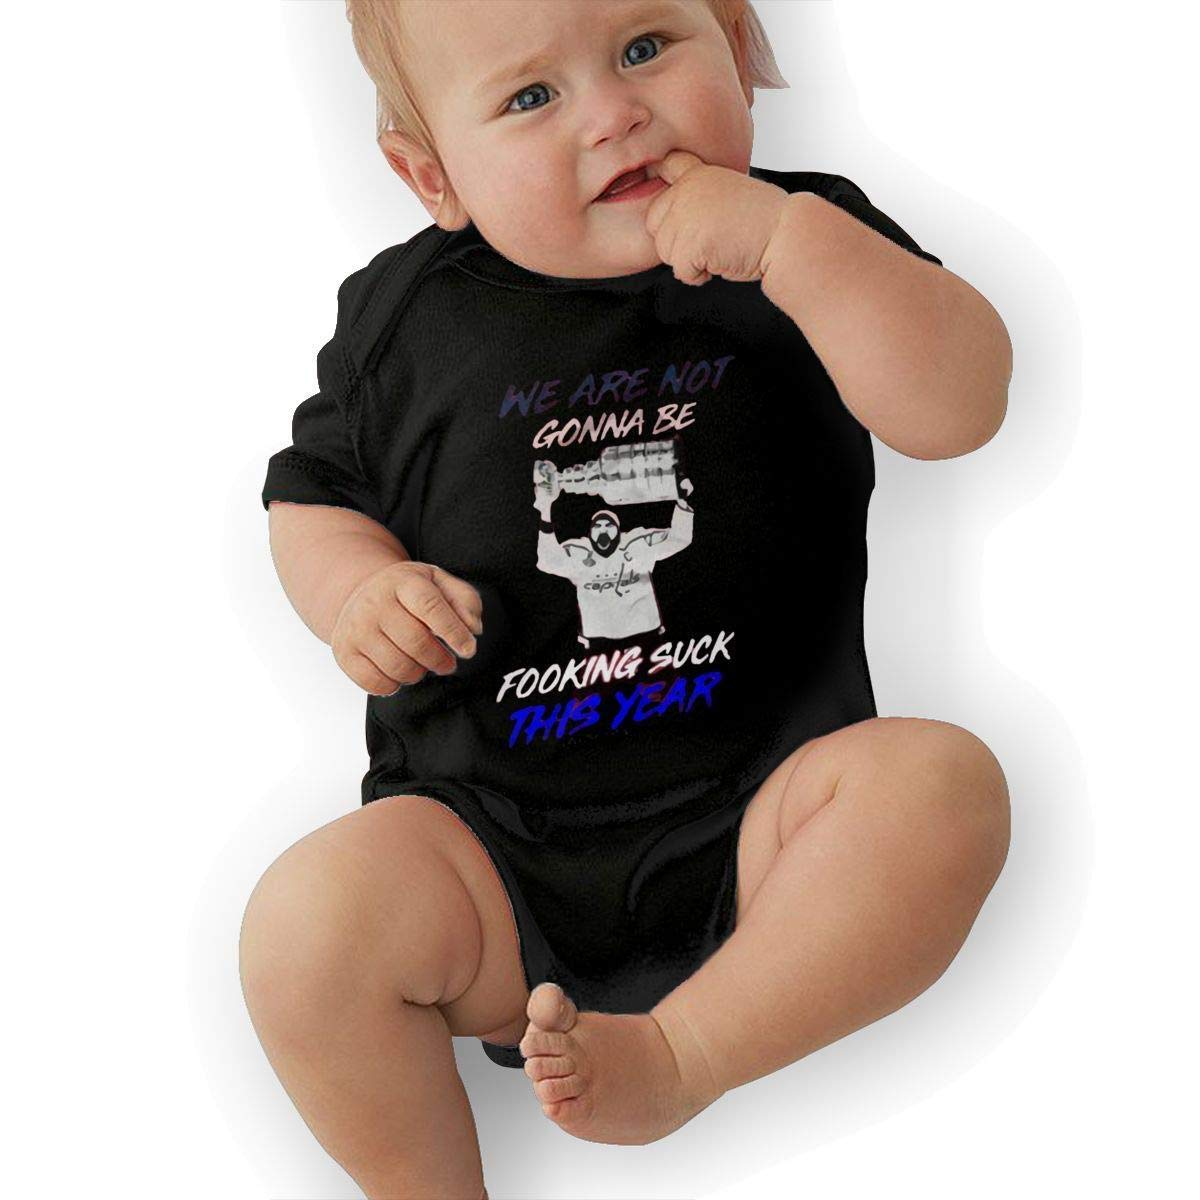 Infant We are Not Gonna Be Fookin Suck This Year Cute Soft Music Band Jersey Bodysuit,Black,18M